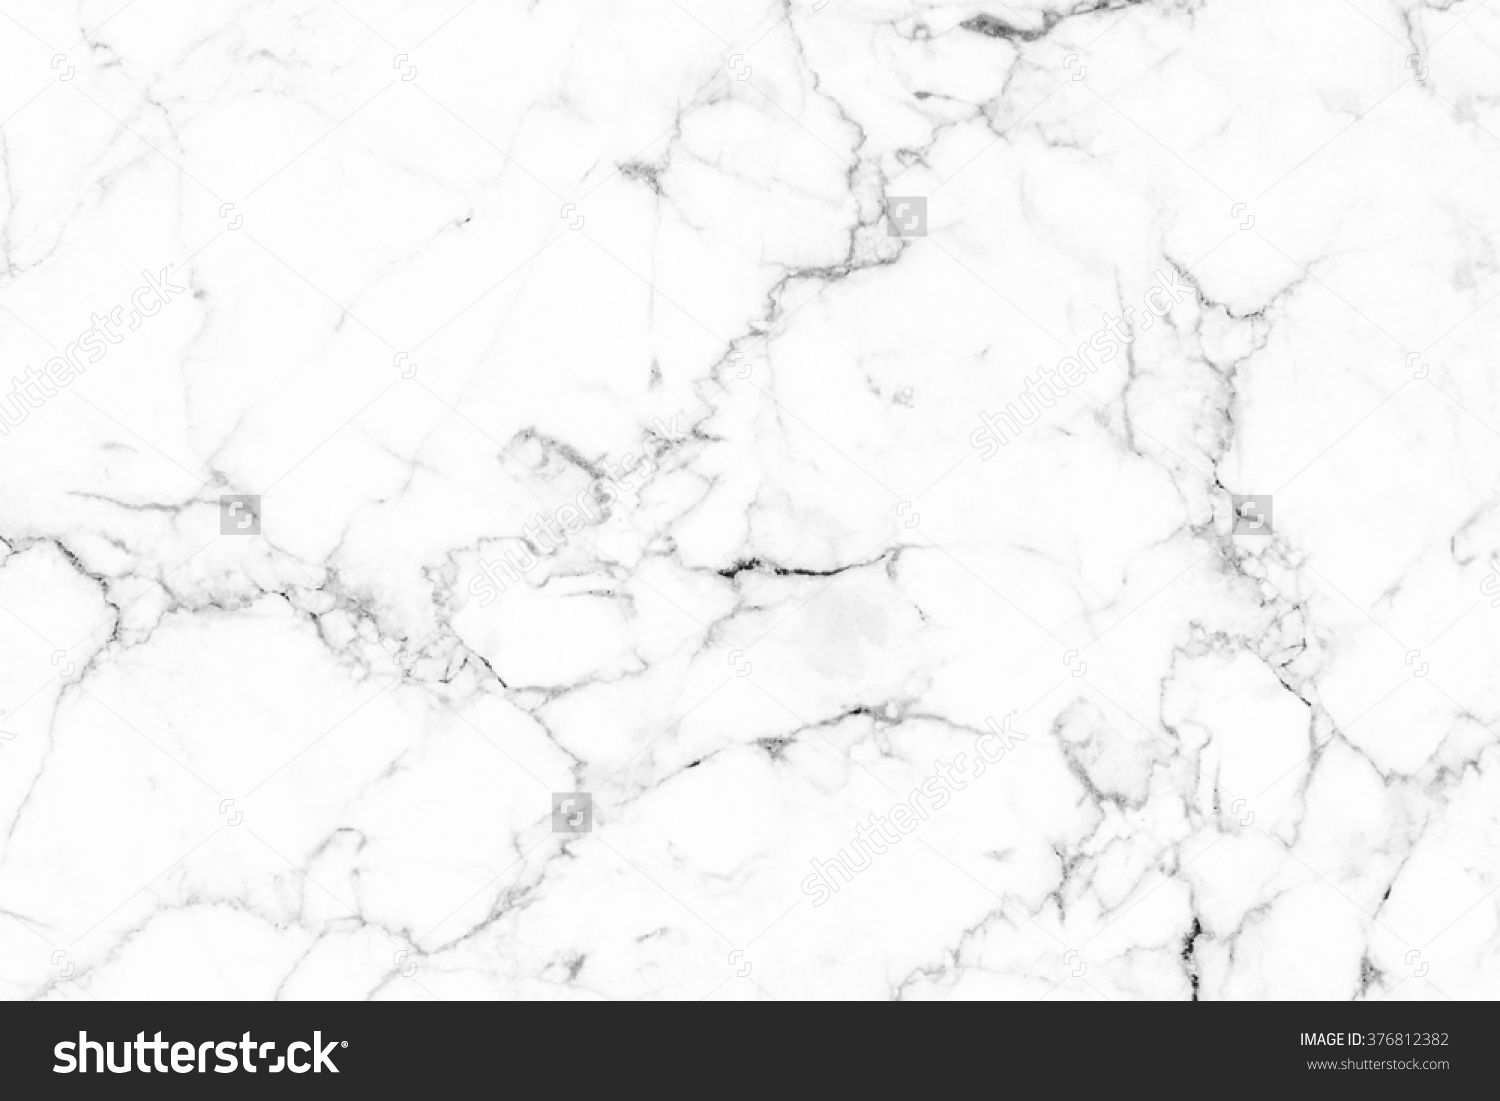 Textured Of The Marble Background Marble Floor Background